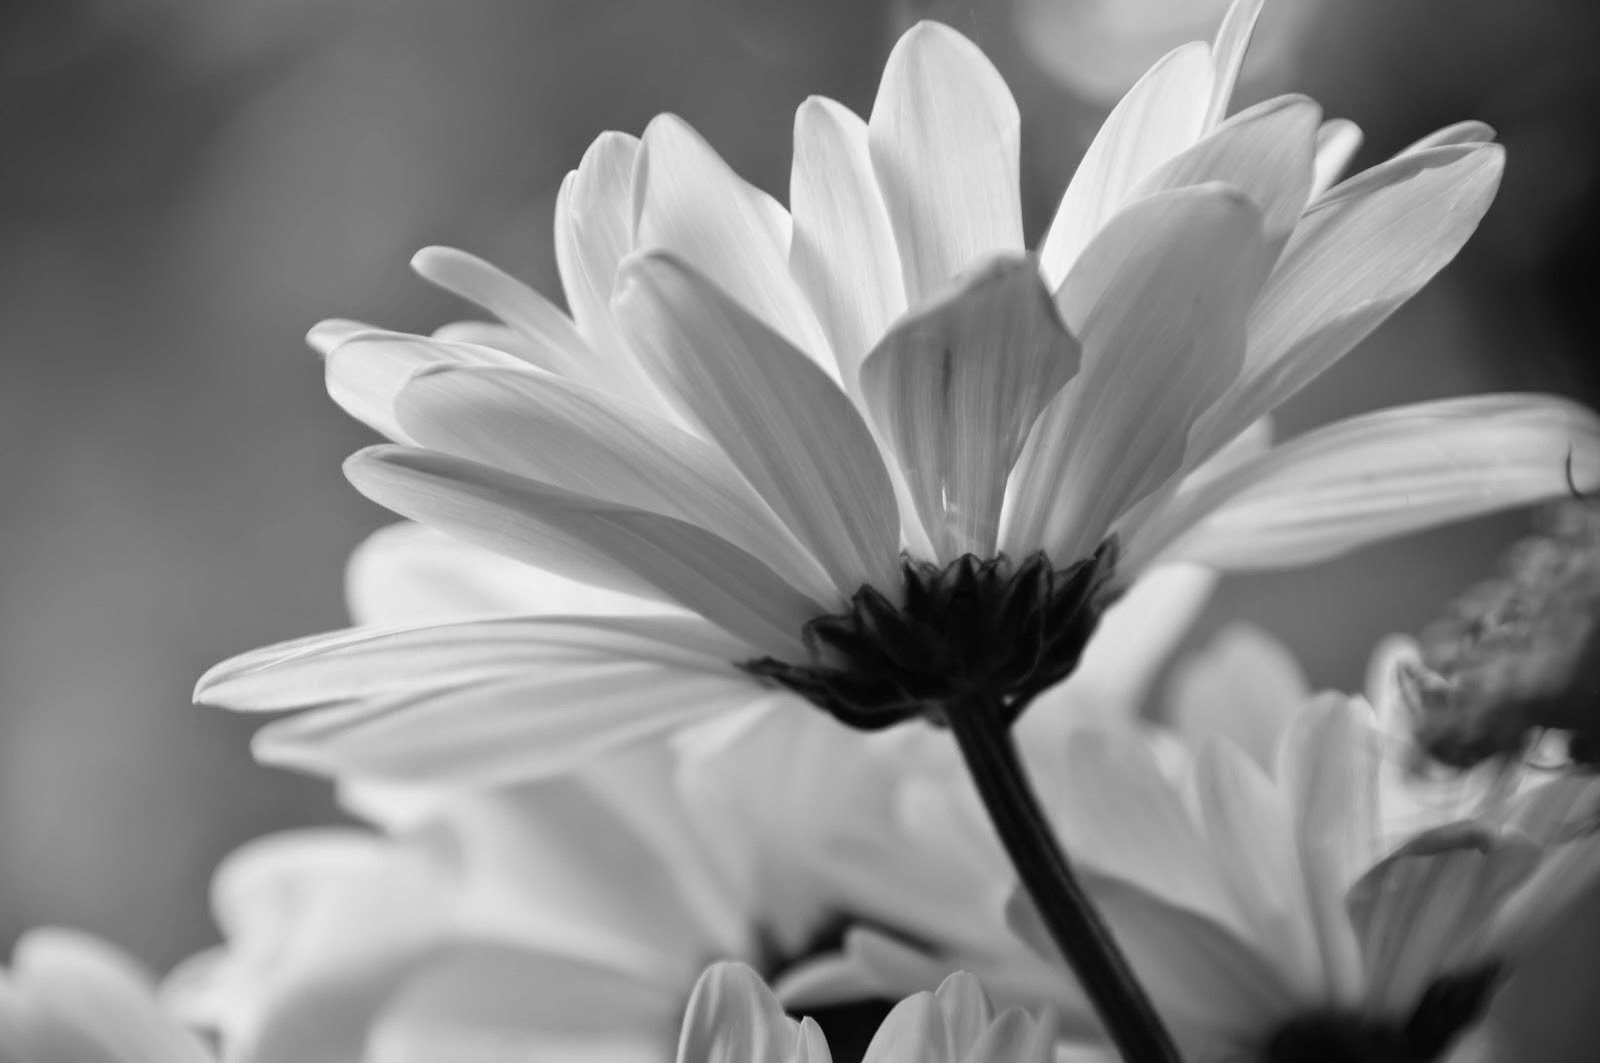 Black And White Daisy Wallpaper Images Hd Wallpapers